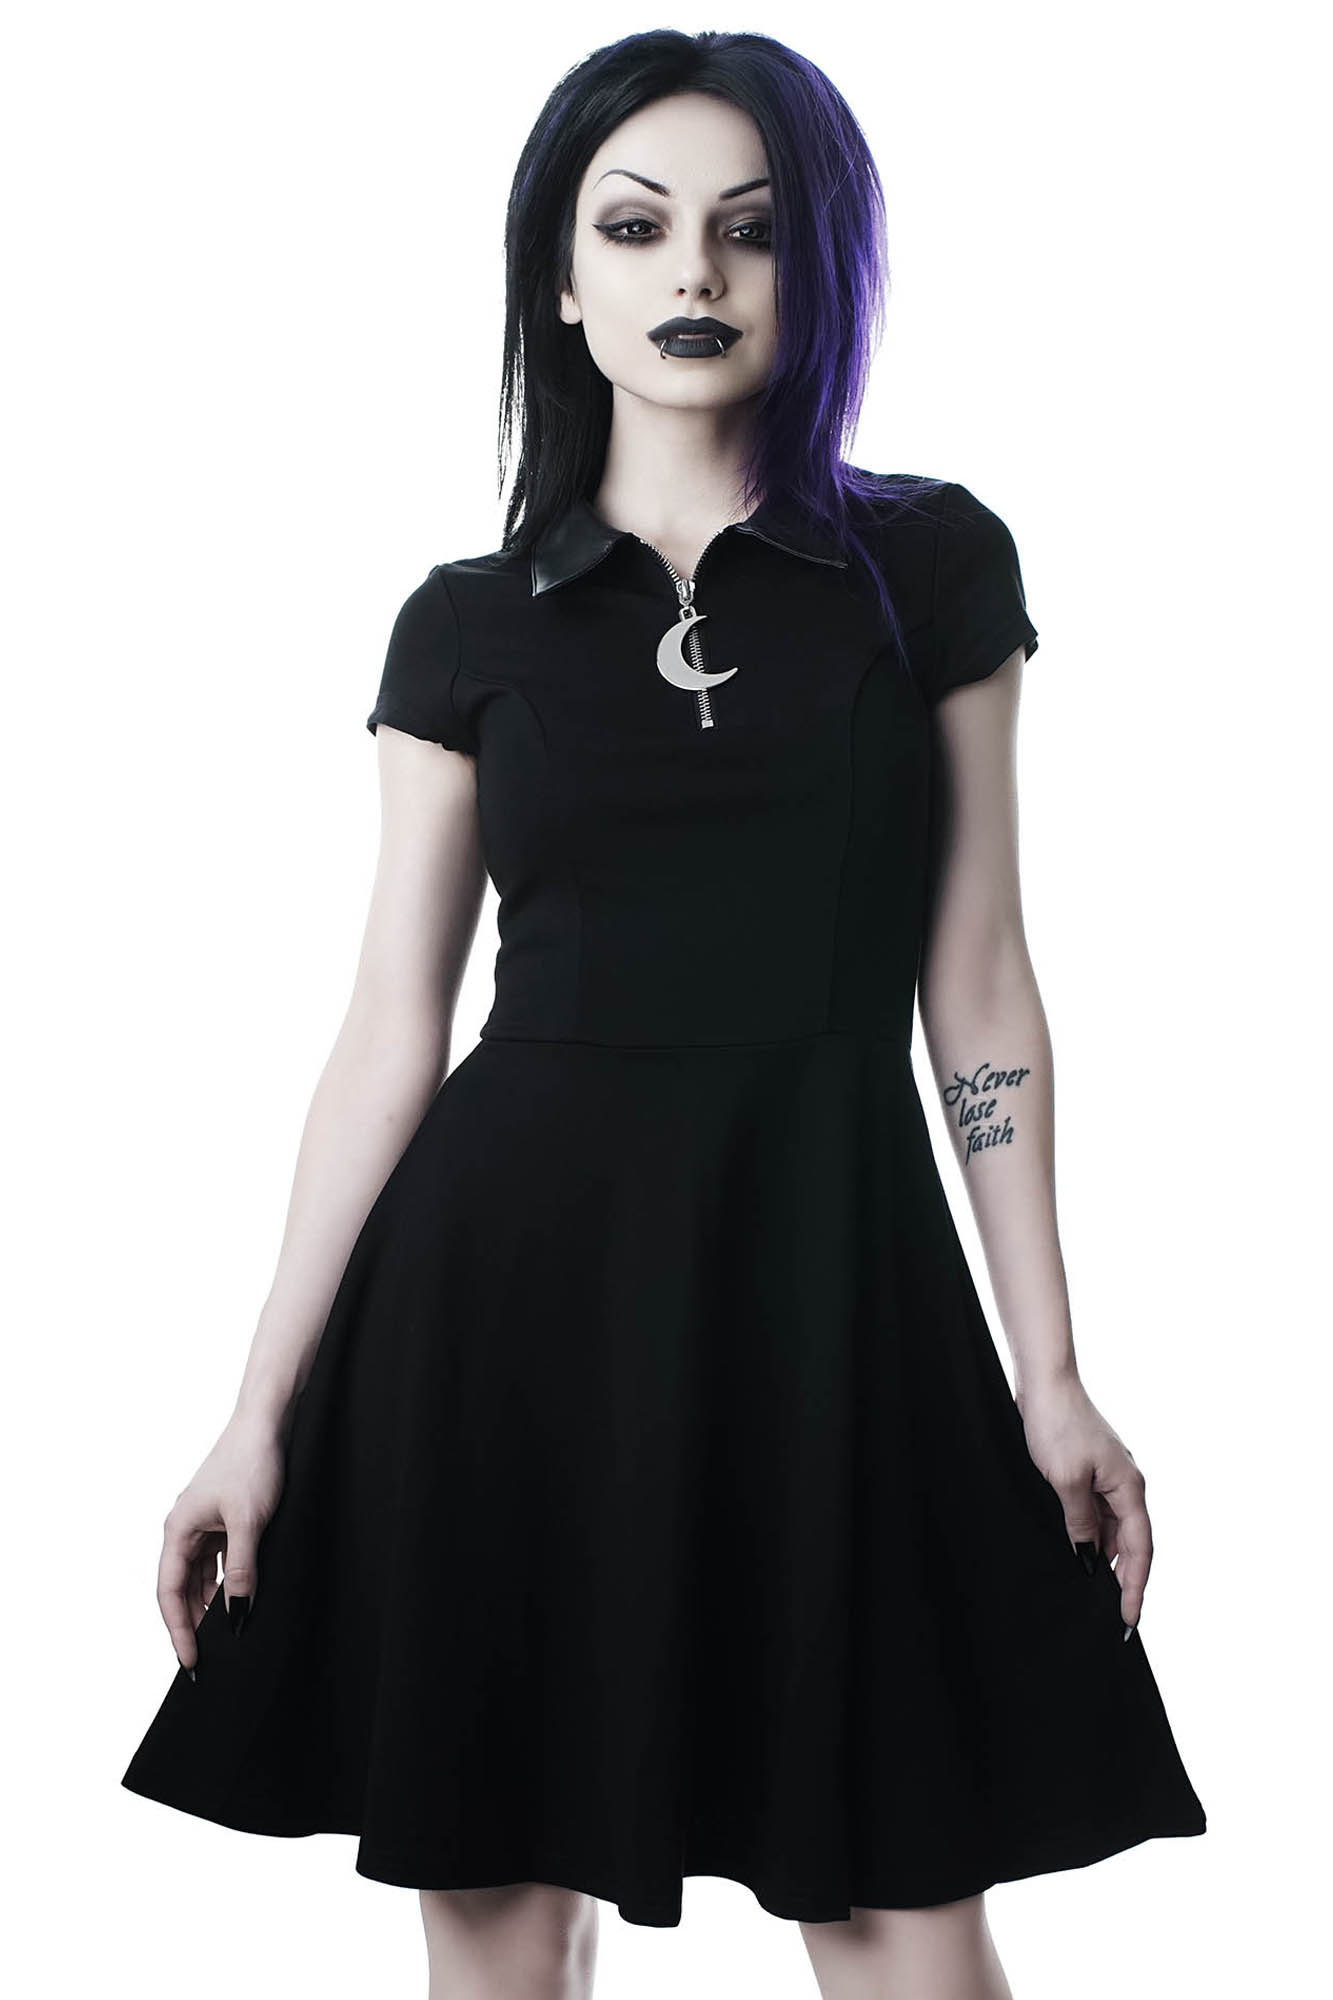 a642f6abdf02 Coven Cutie Skater Dress. Double tap to zoom